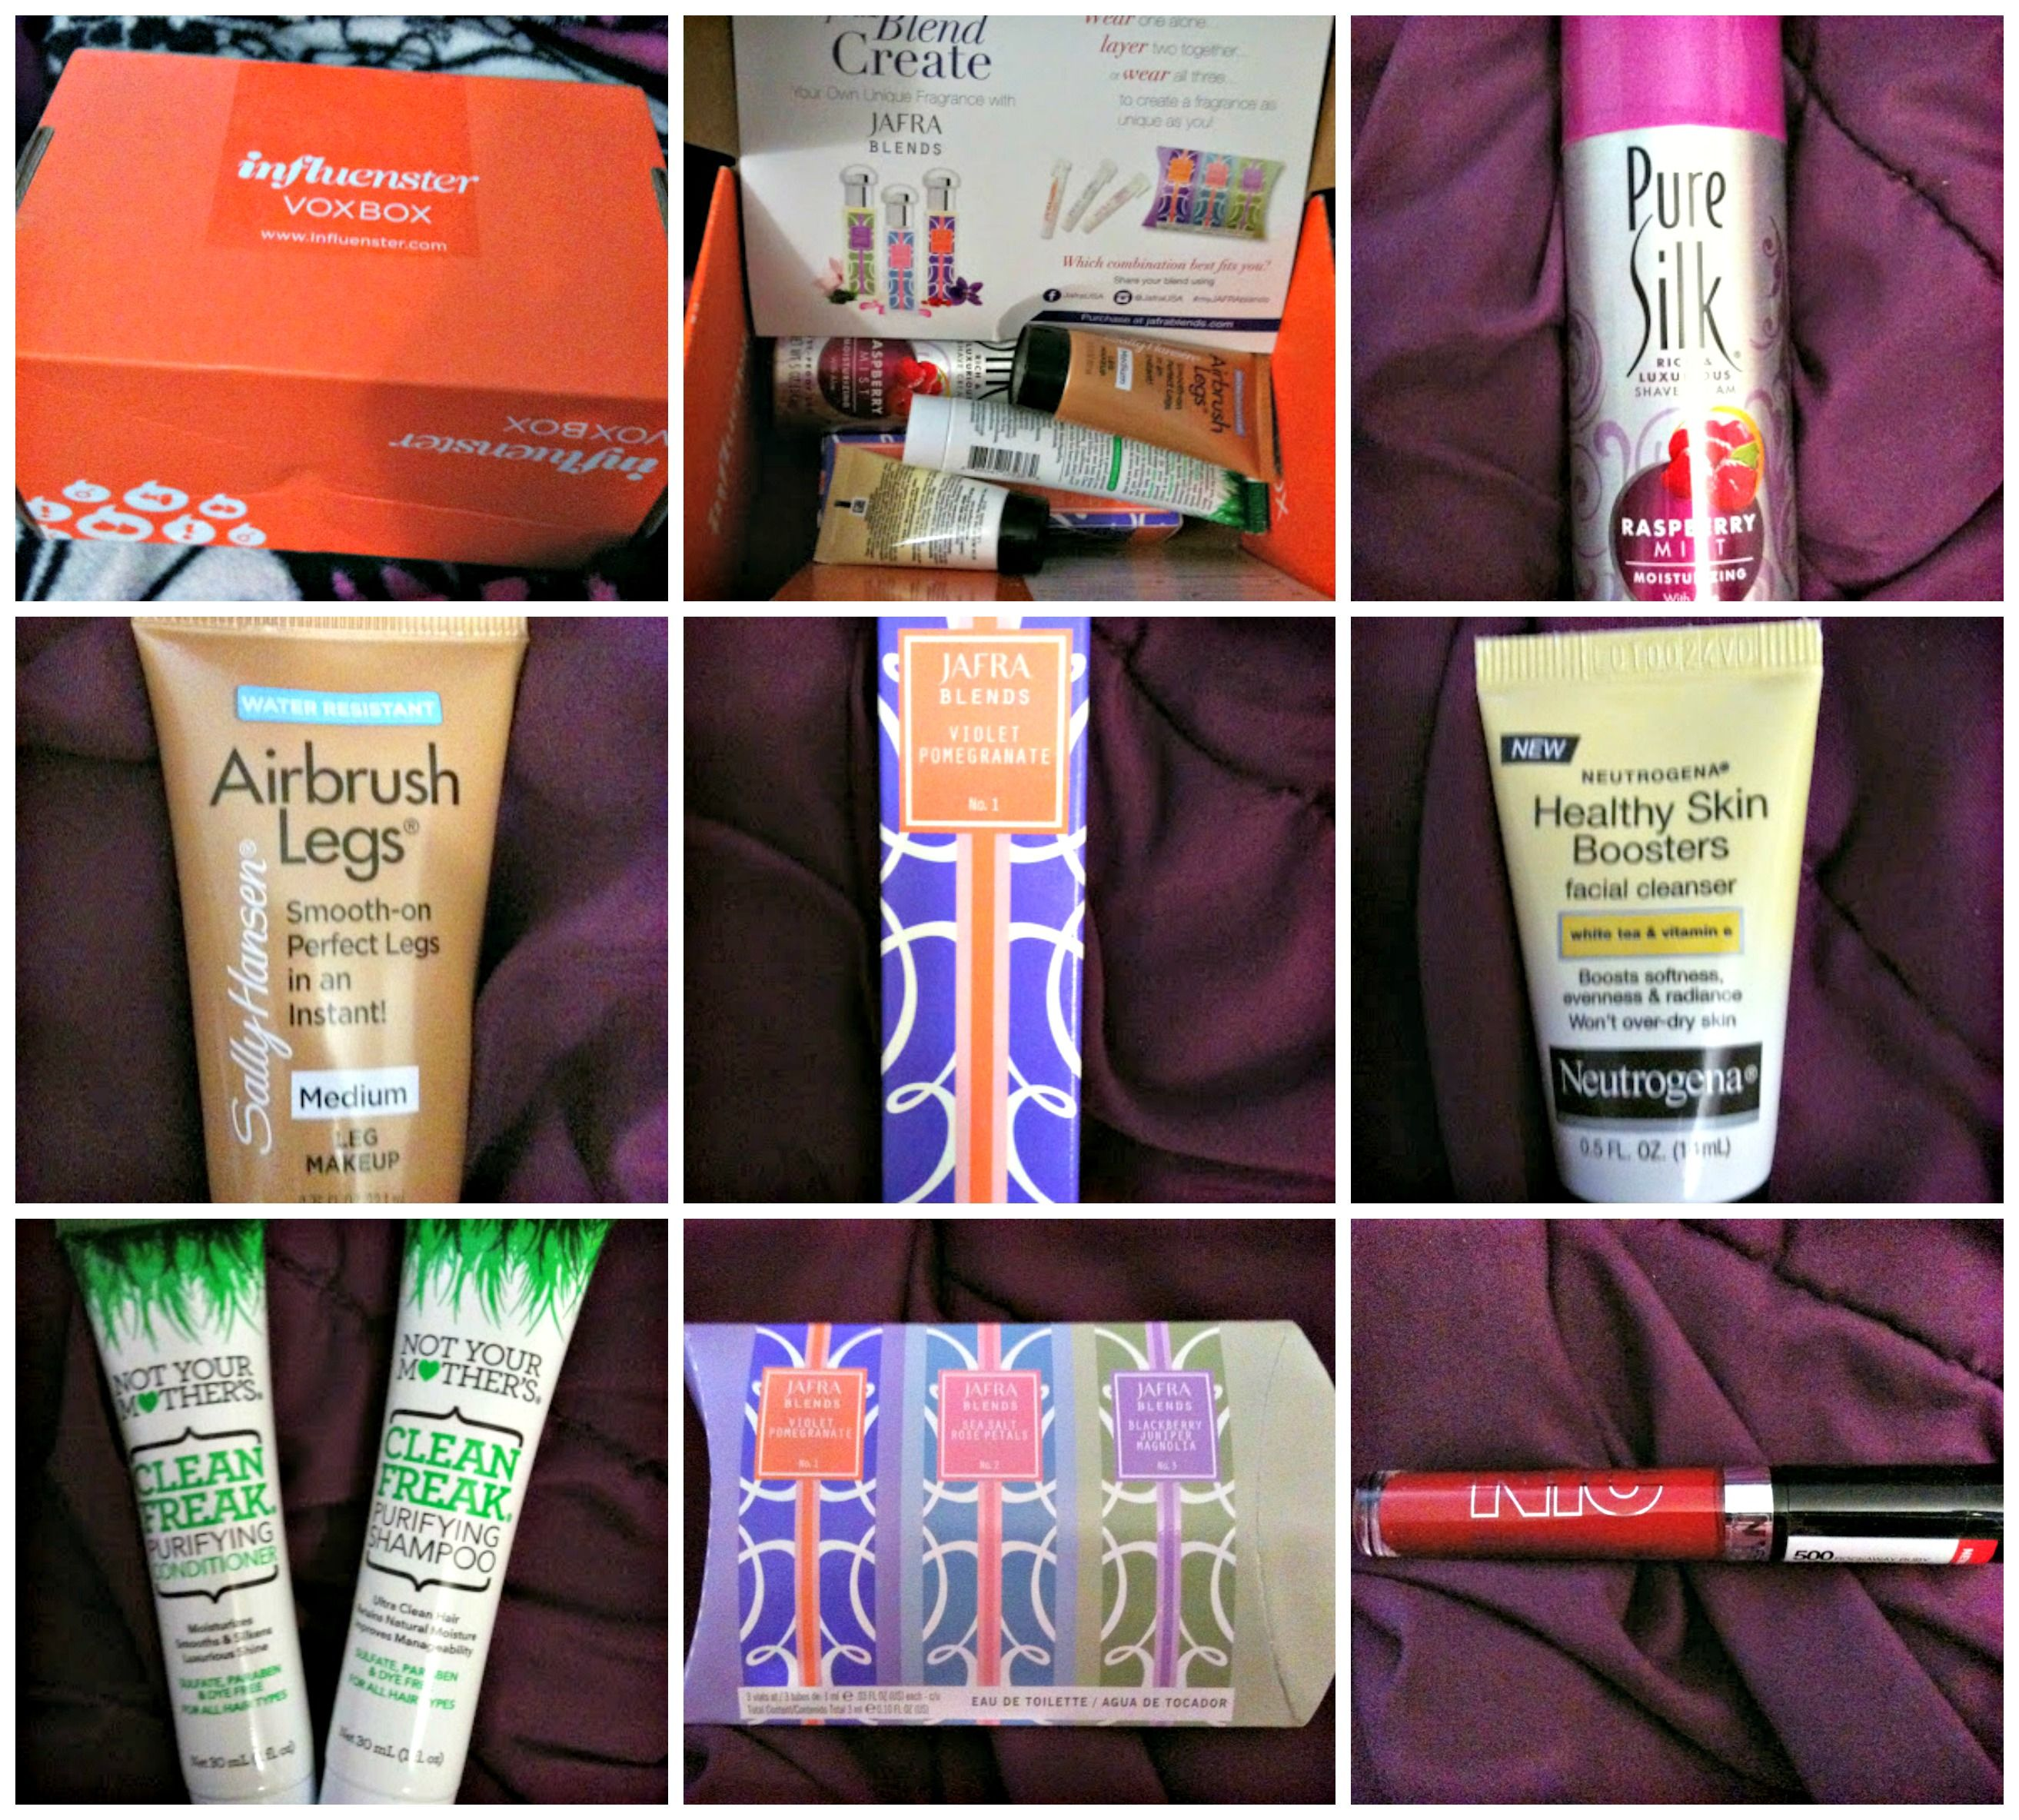 influenster Fresca Voxbox unboxing! Here are the goodies